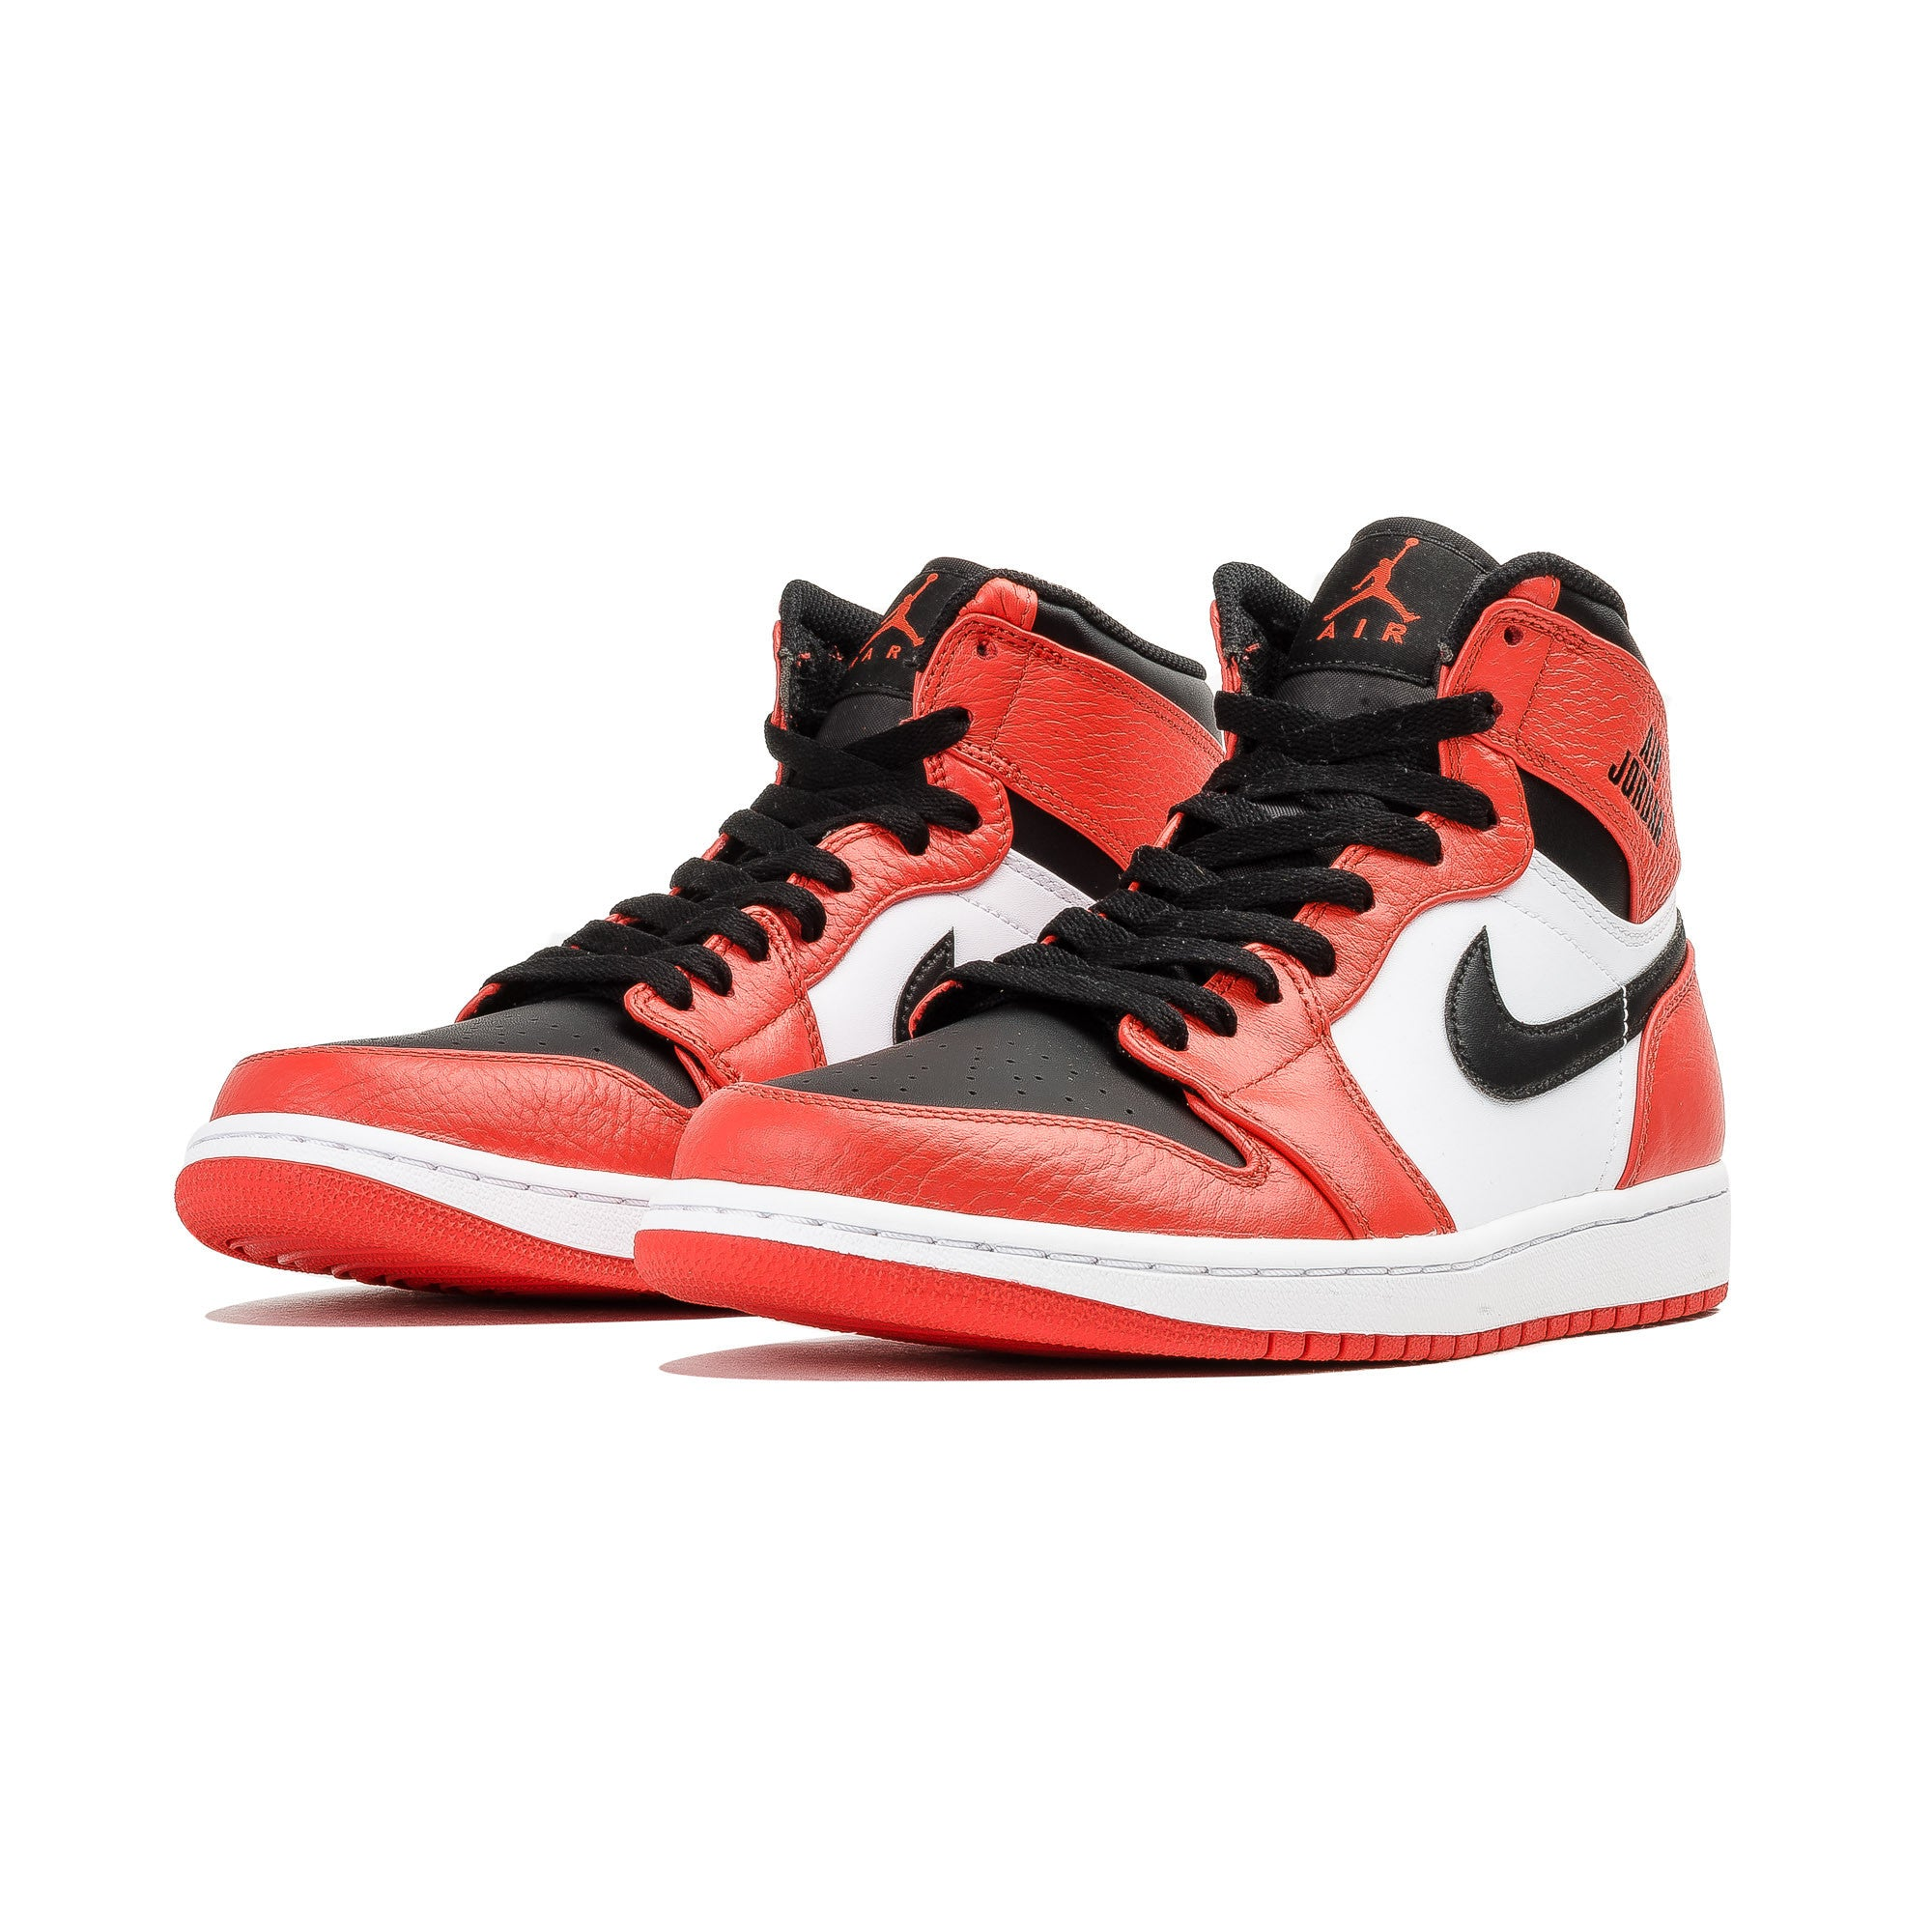 Air Jordan 1 Retro High 332550-800